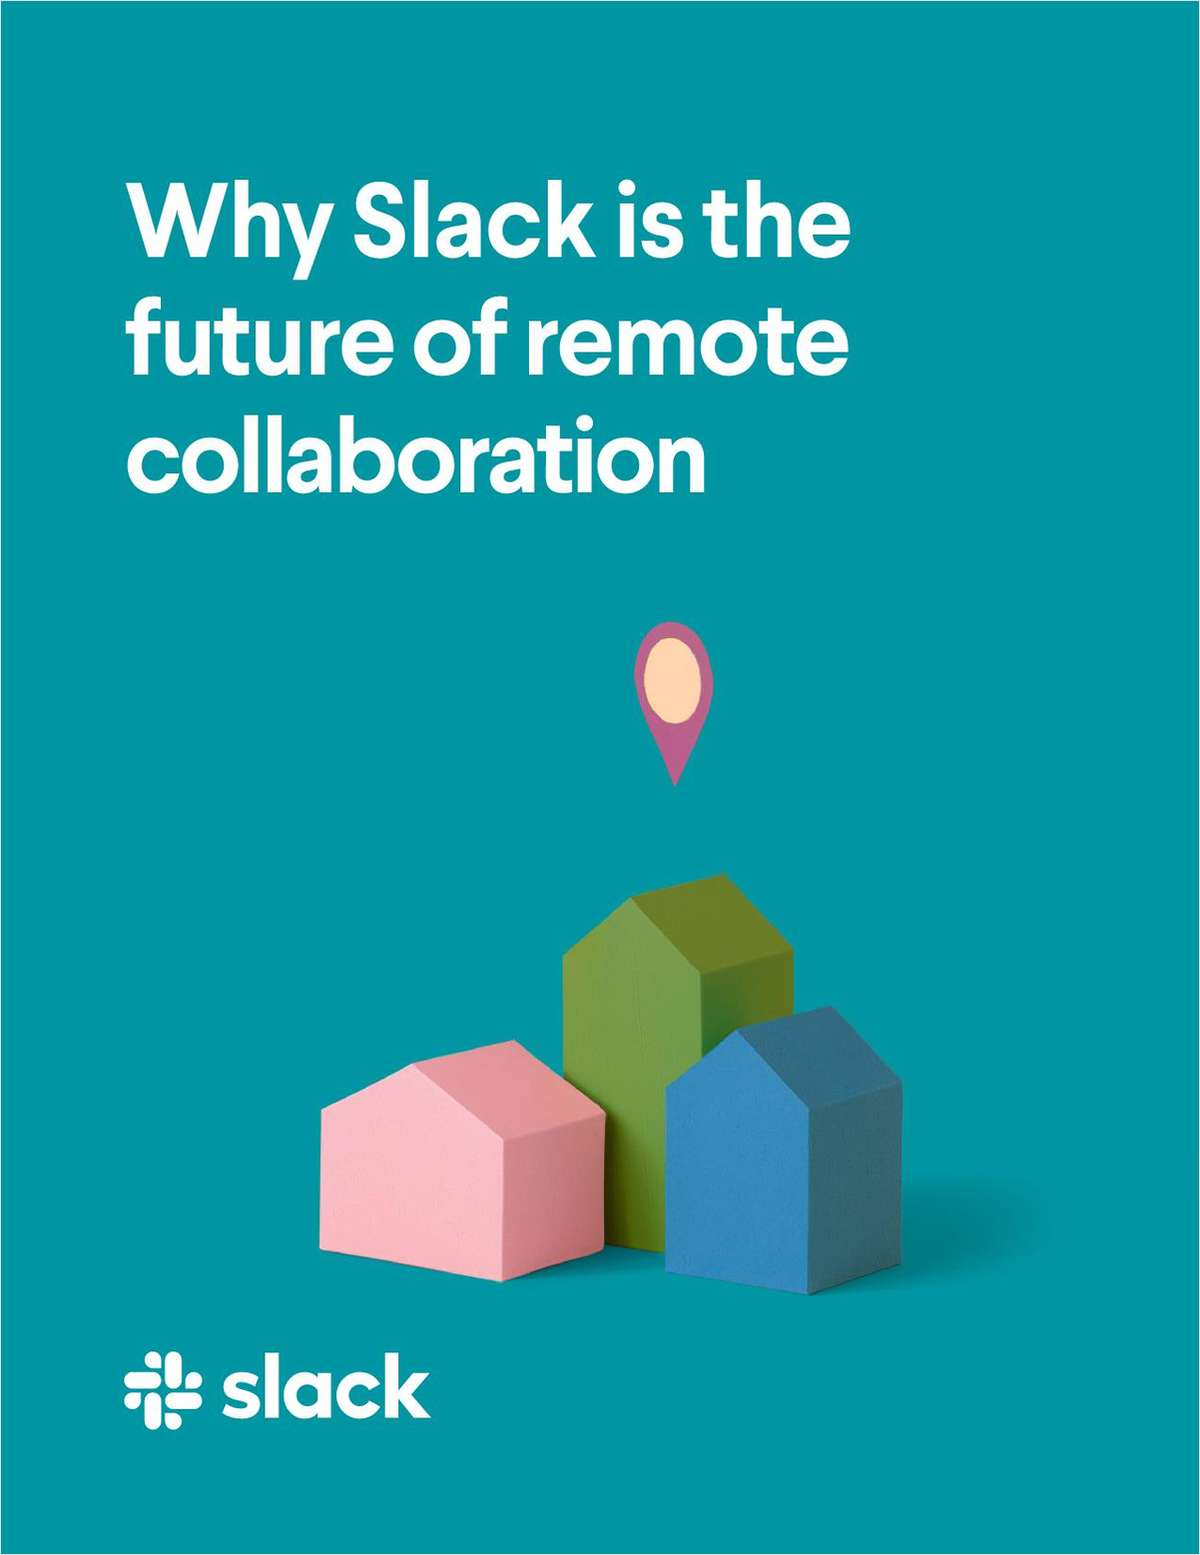 Why Slack is the Future of Remote Collaboration